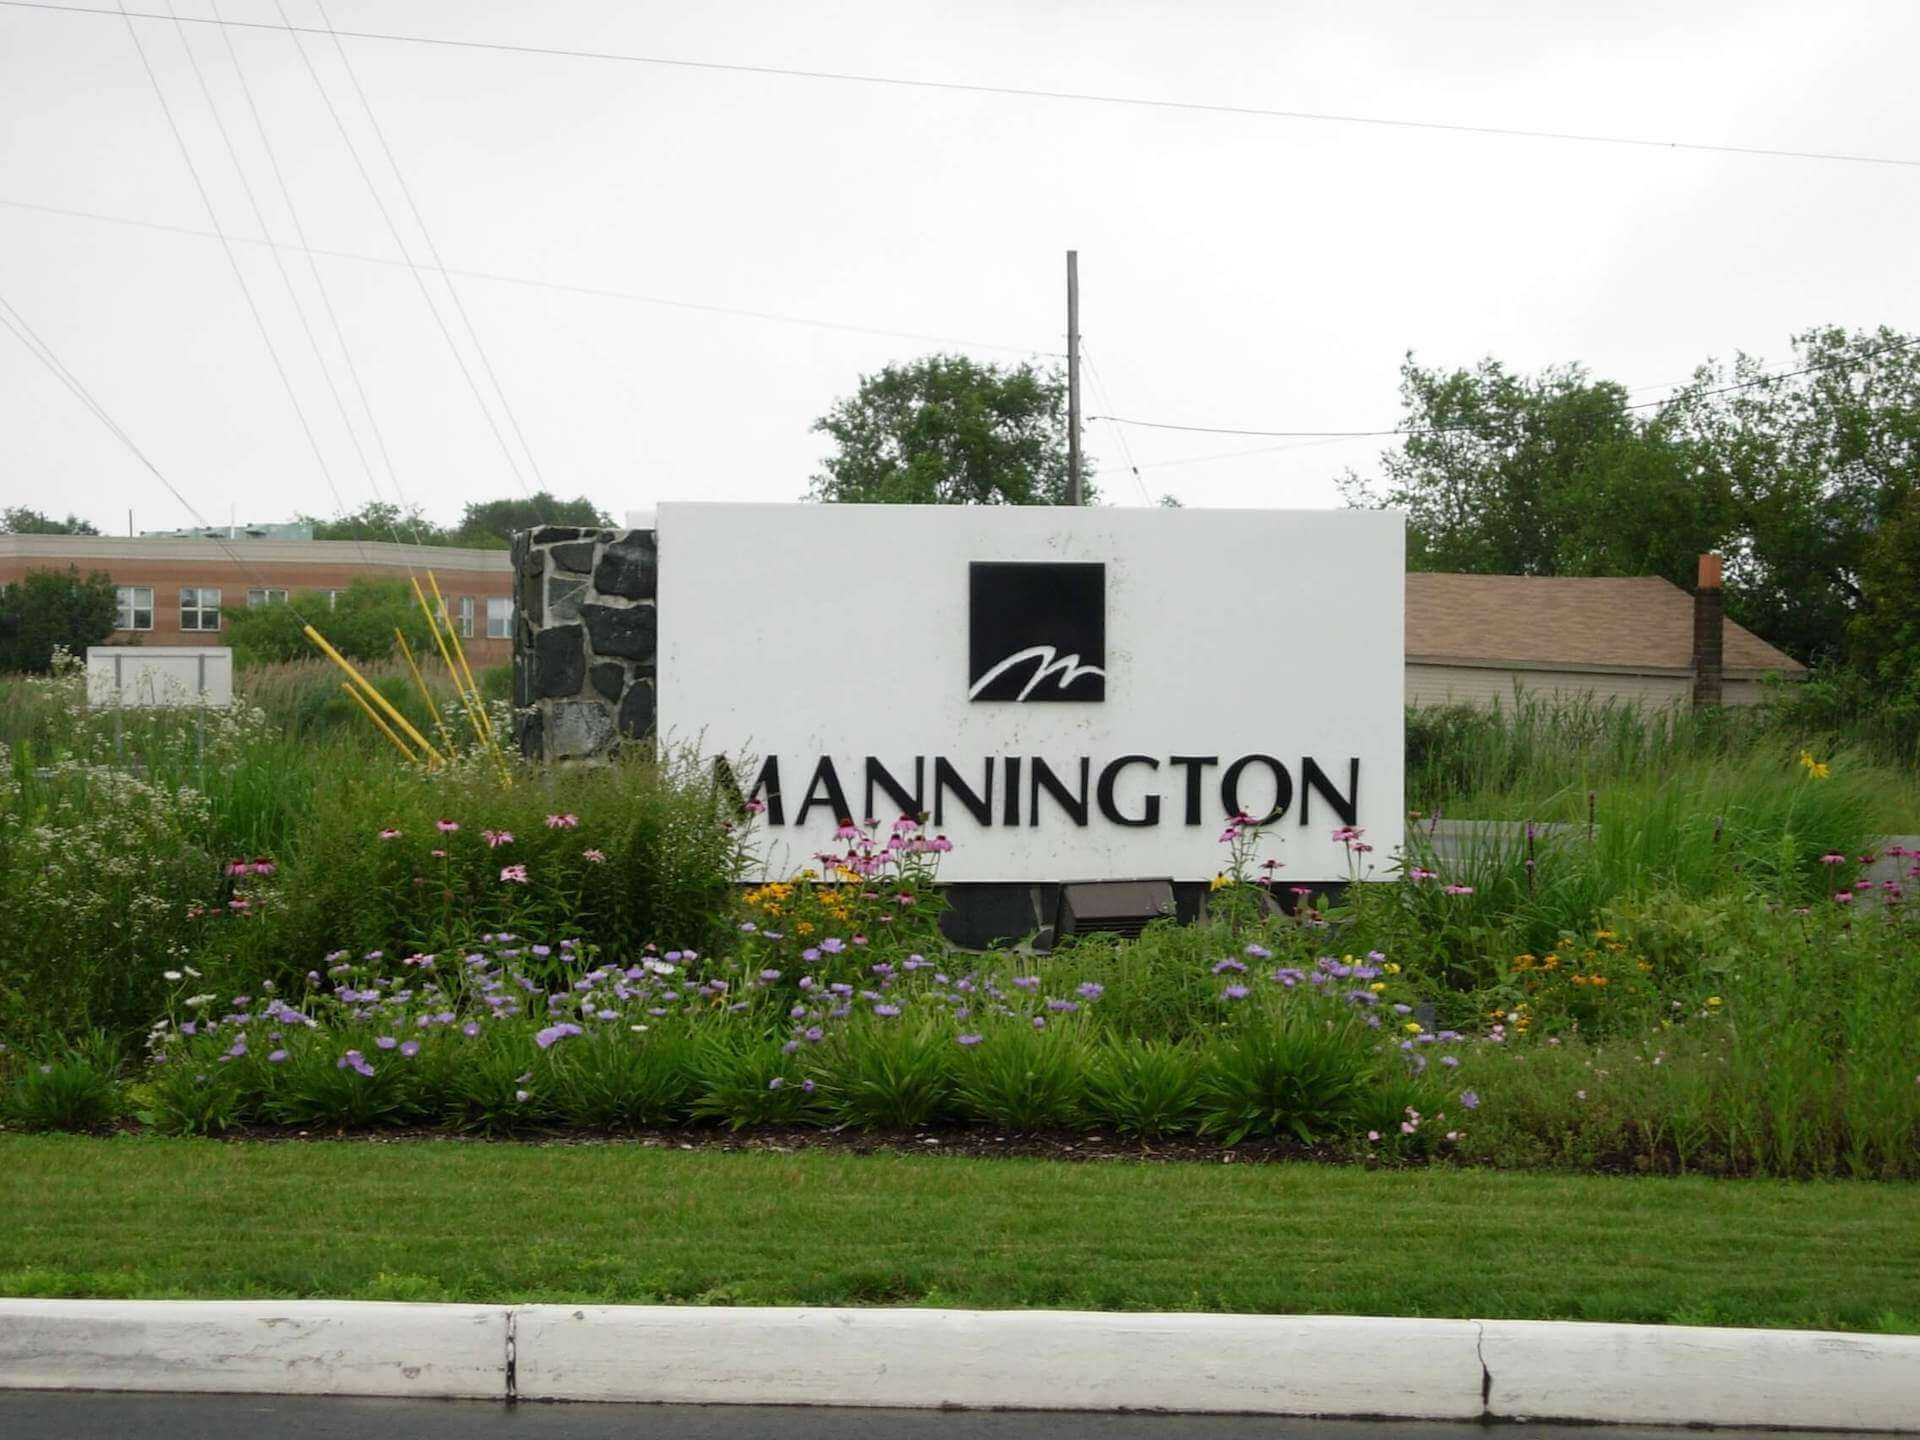 mannington mills sign next to street